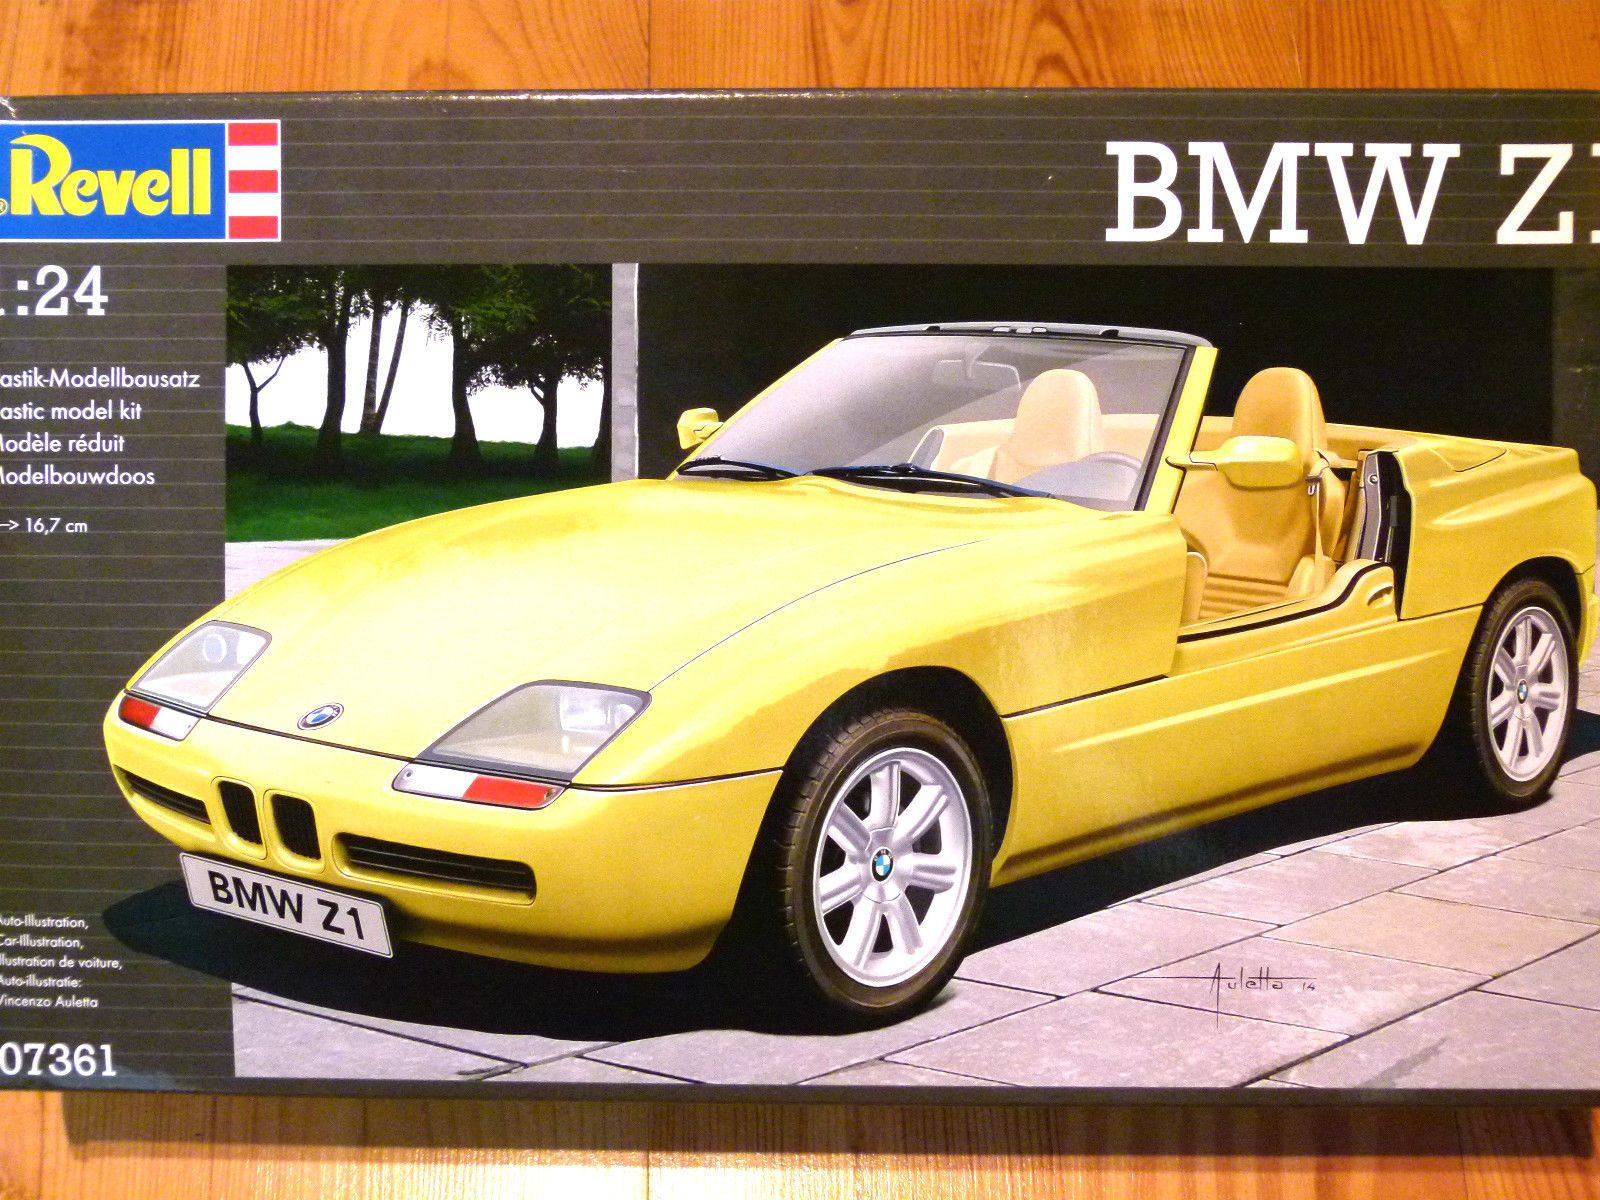 32bfffa1d8c6d62573fe6a54ae235cfa Remarkable Bmw Z1 for Sale Philippines Cars Trend